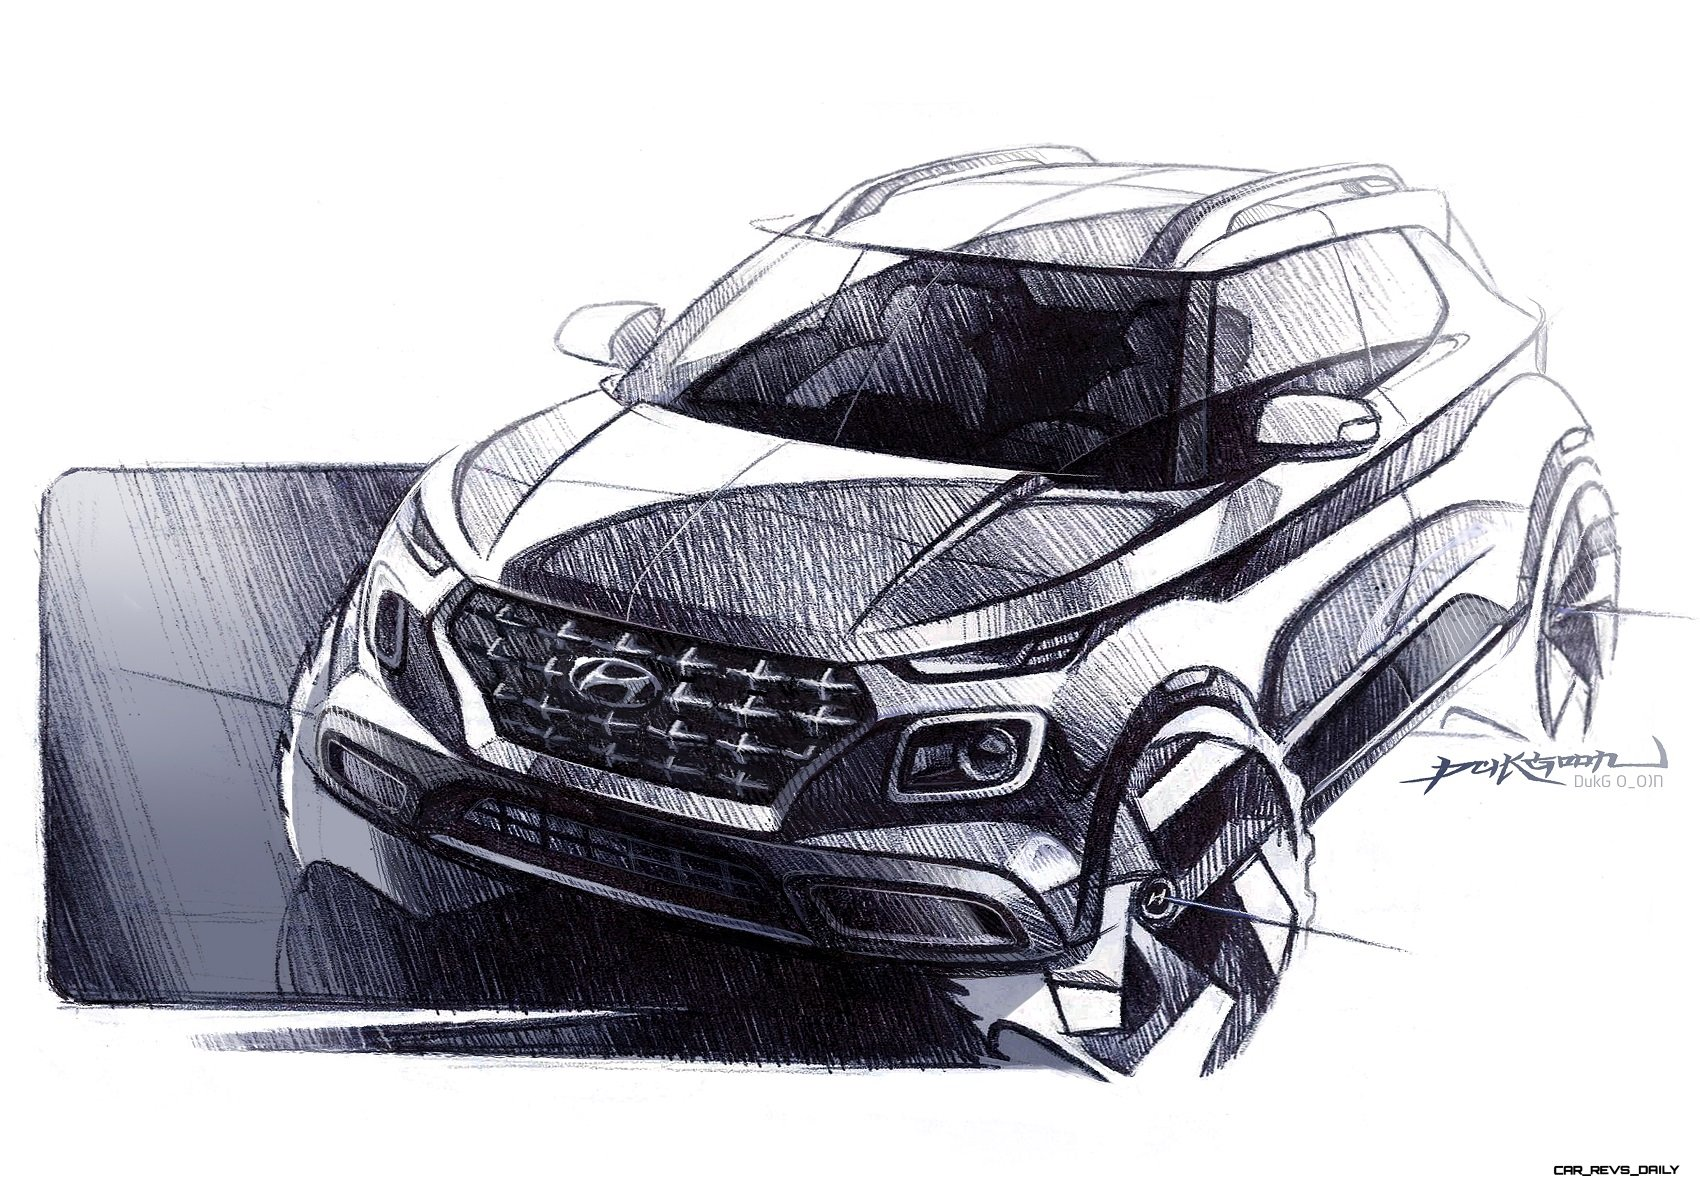 Cuv Car Hyundai Sheds More Light On Upcoming Venue Cuv With New Sketches